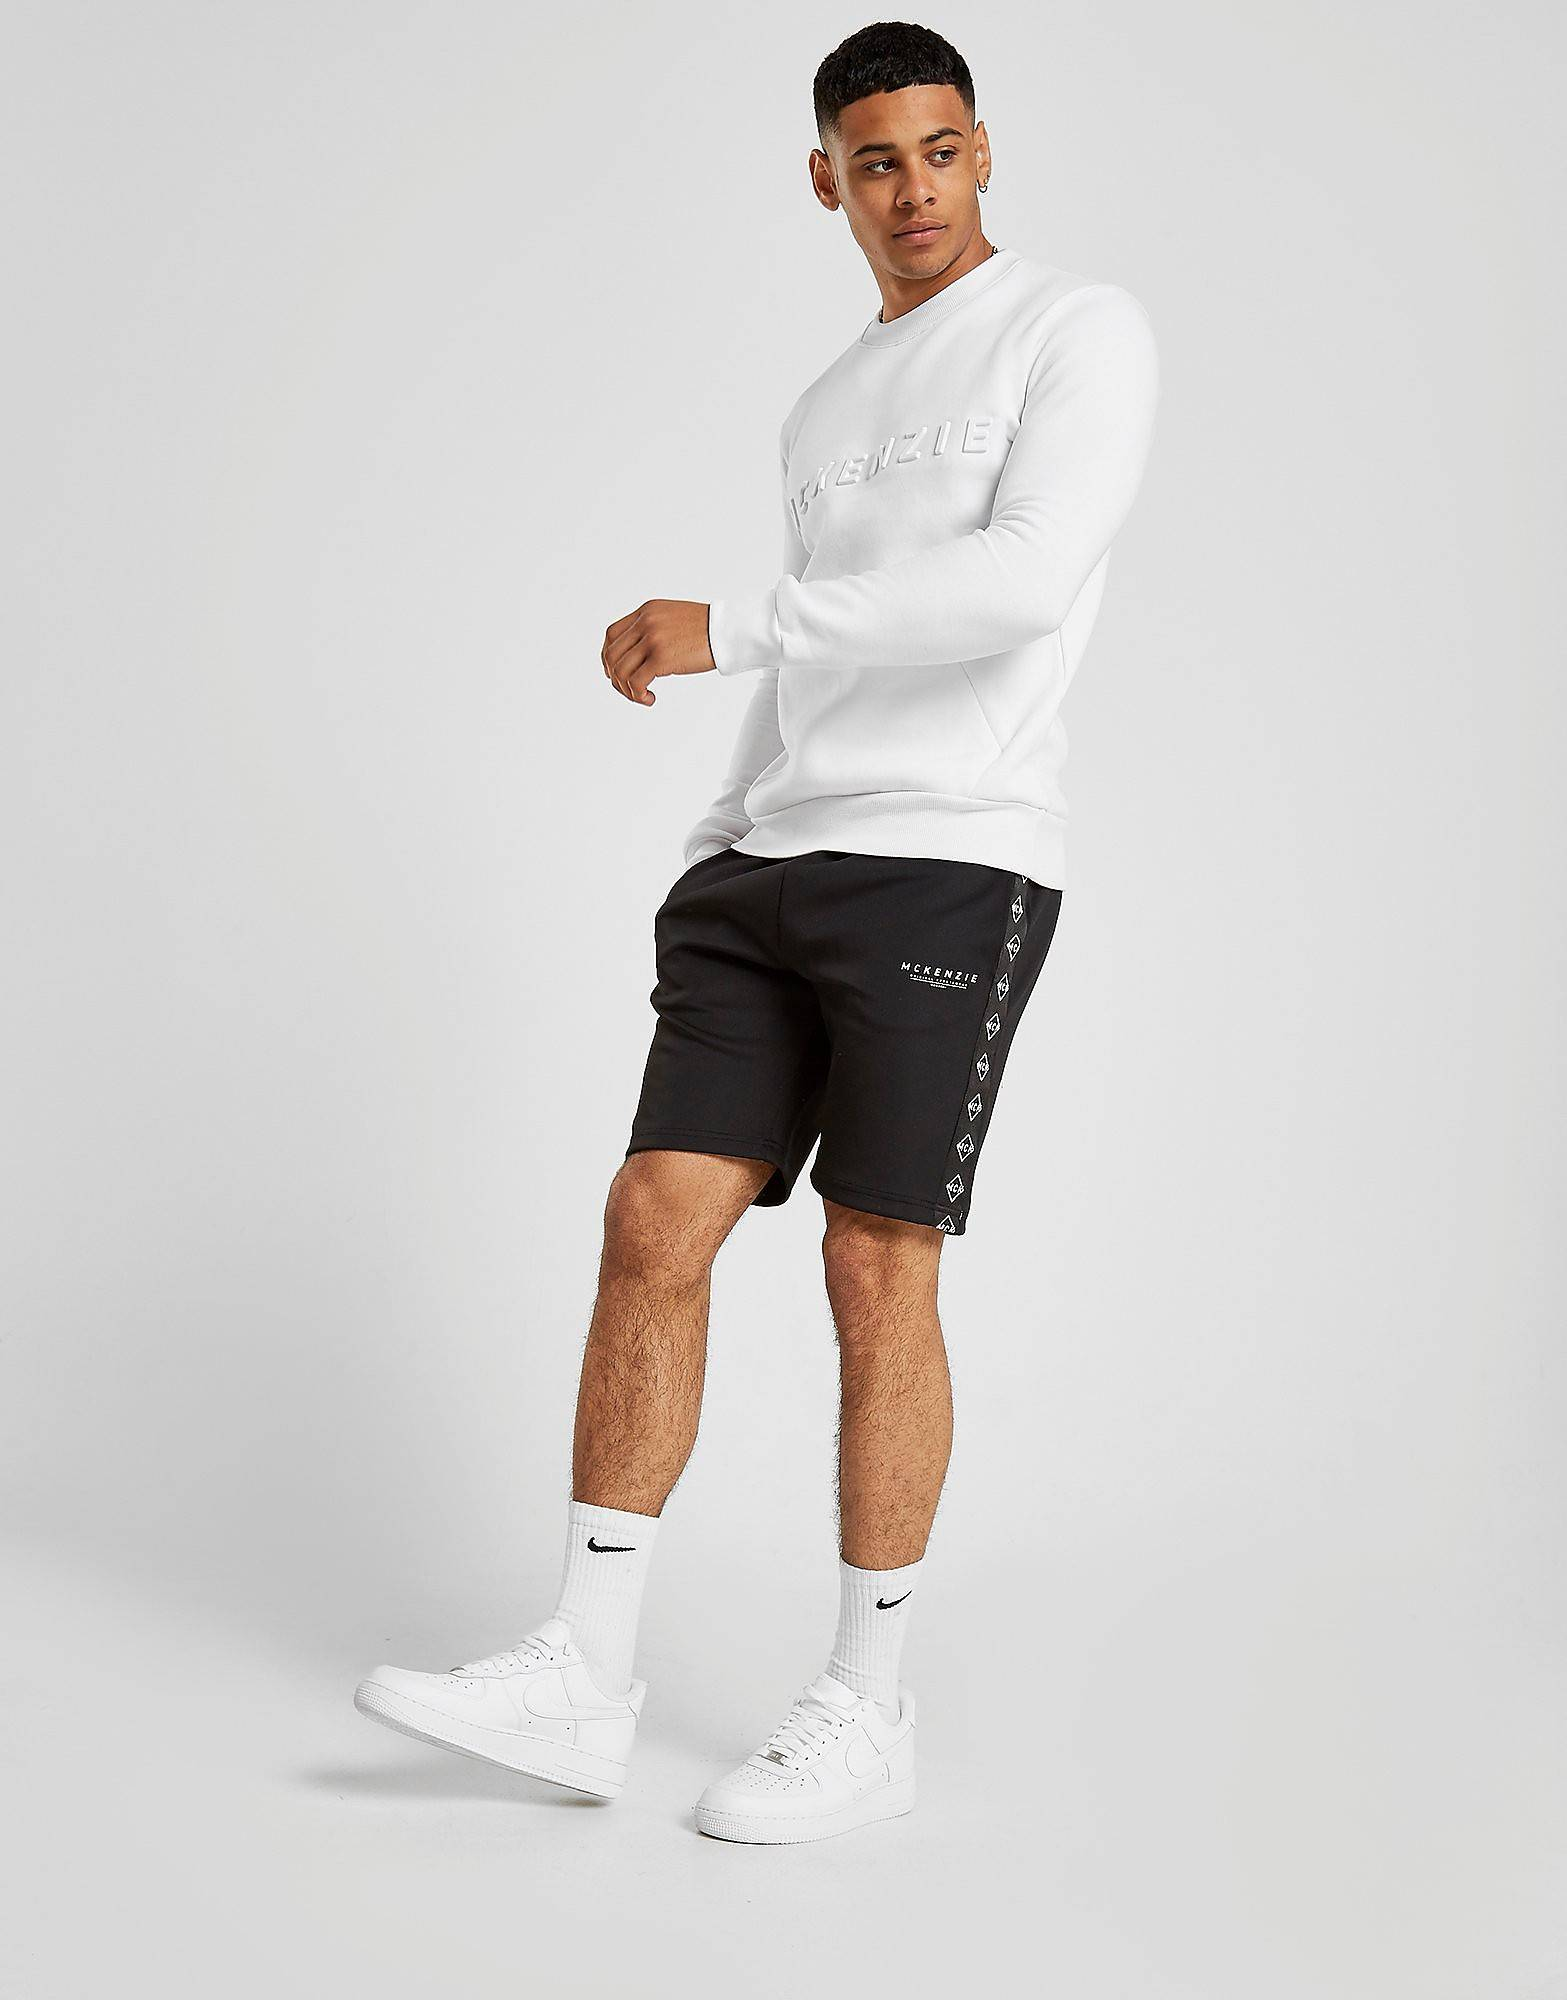 Image of McKenzie Aaron Poly Tape Shorts - Only at JD - Mens, Musta